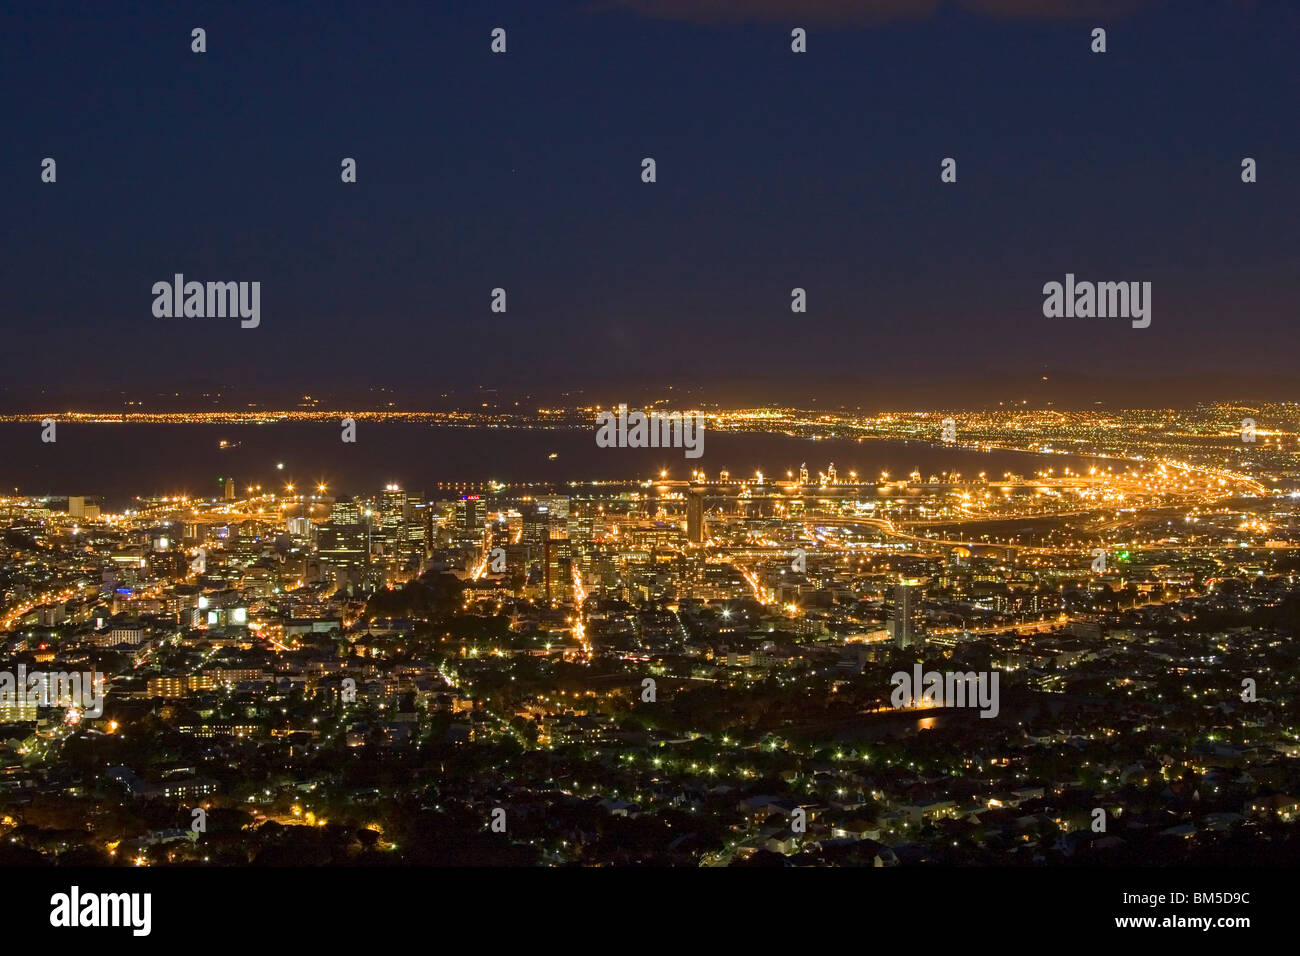 Cape Town at night - South Africa - Stock Image